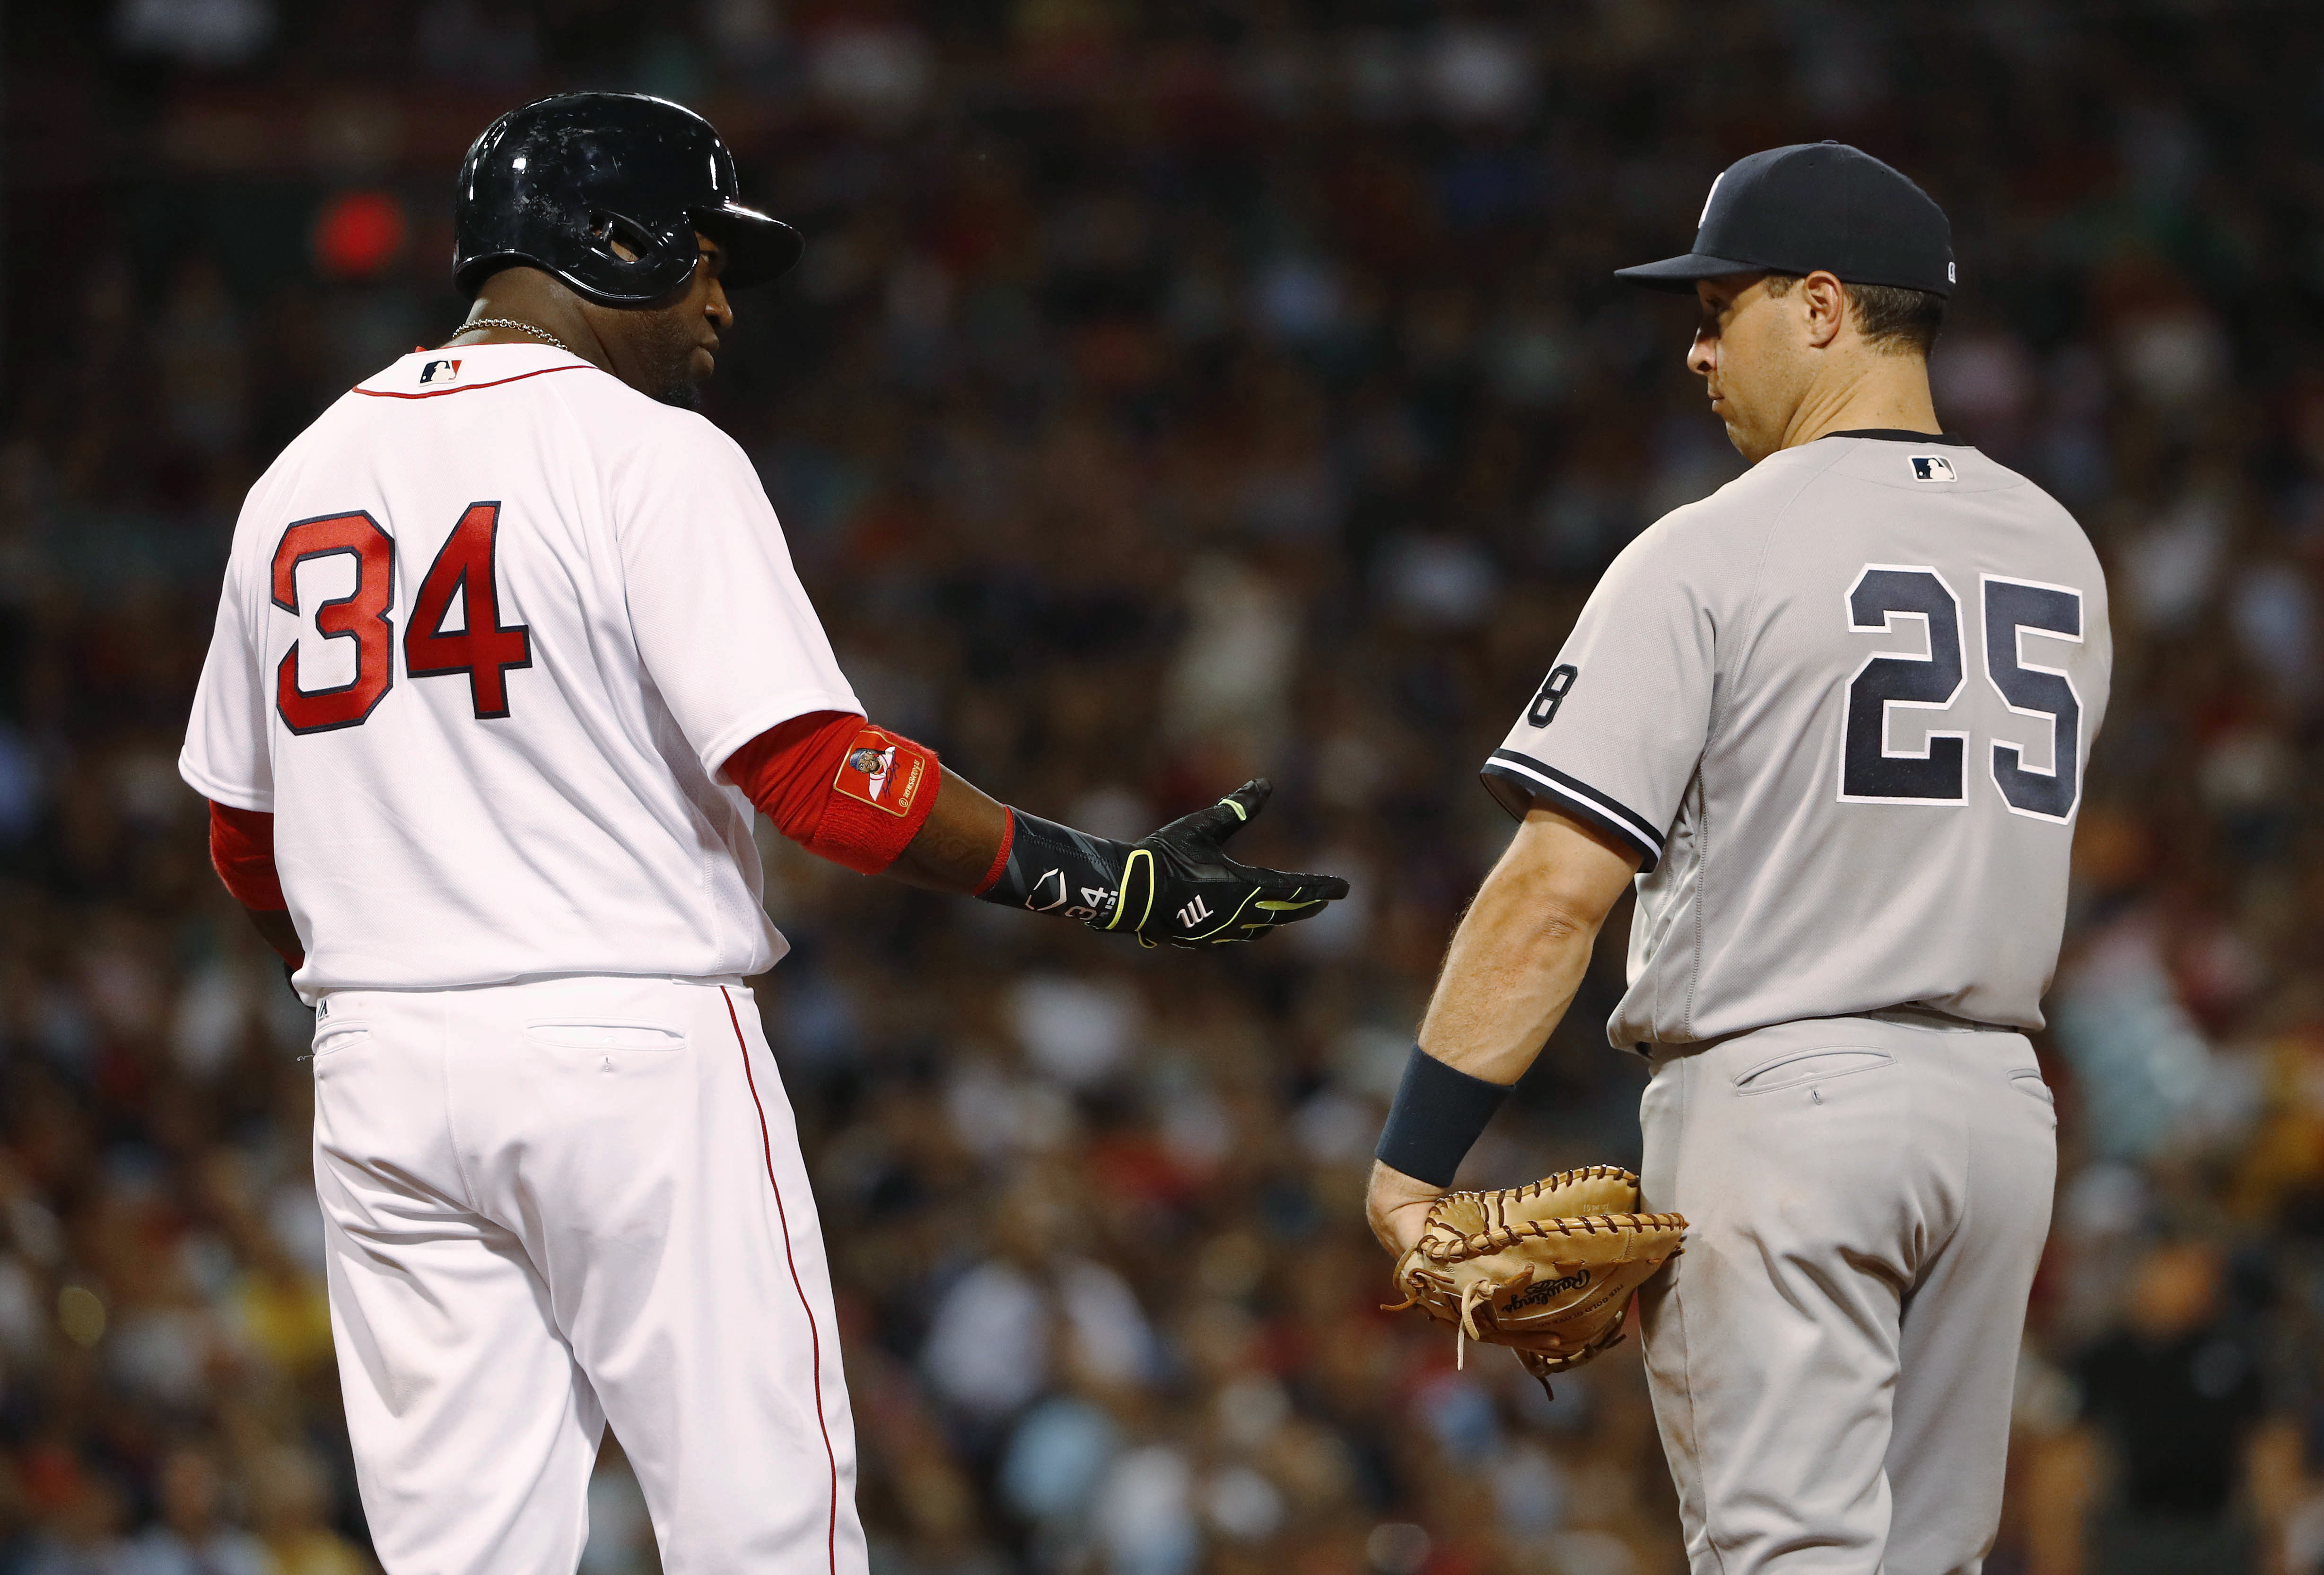 Boston Red Sox designated hitter David Ortiz (34) talks with New York Yankees first baseman Mark Teixeira after his RBI single during the fifth inning of a baseball game at Fenway Park in Boston on Tuesday, Aug. 9, 2016. (AP Photo/Winslow Townson)